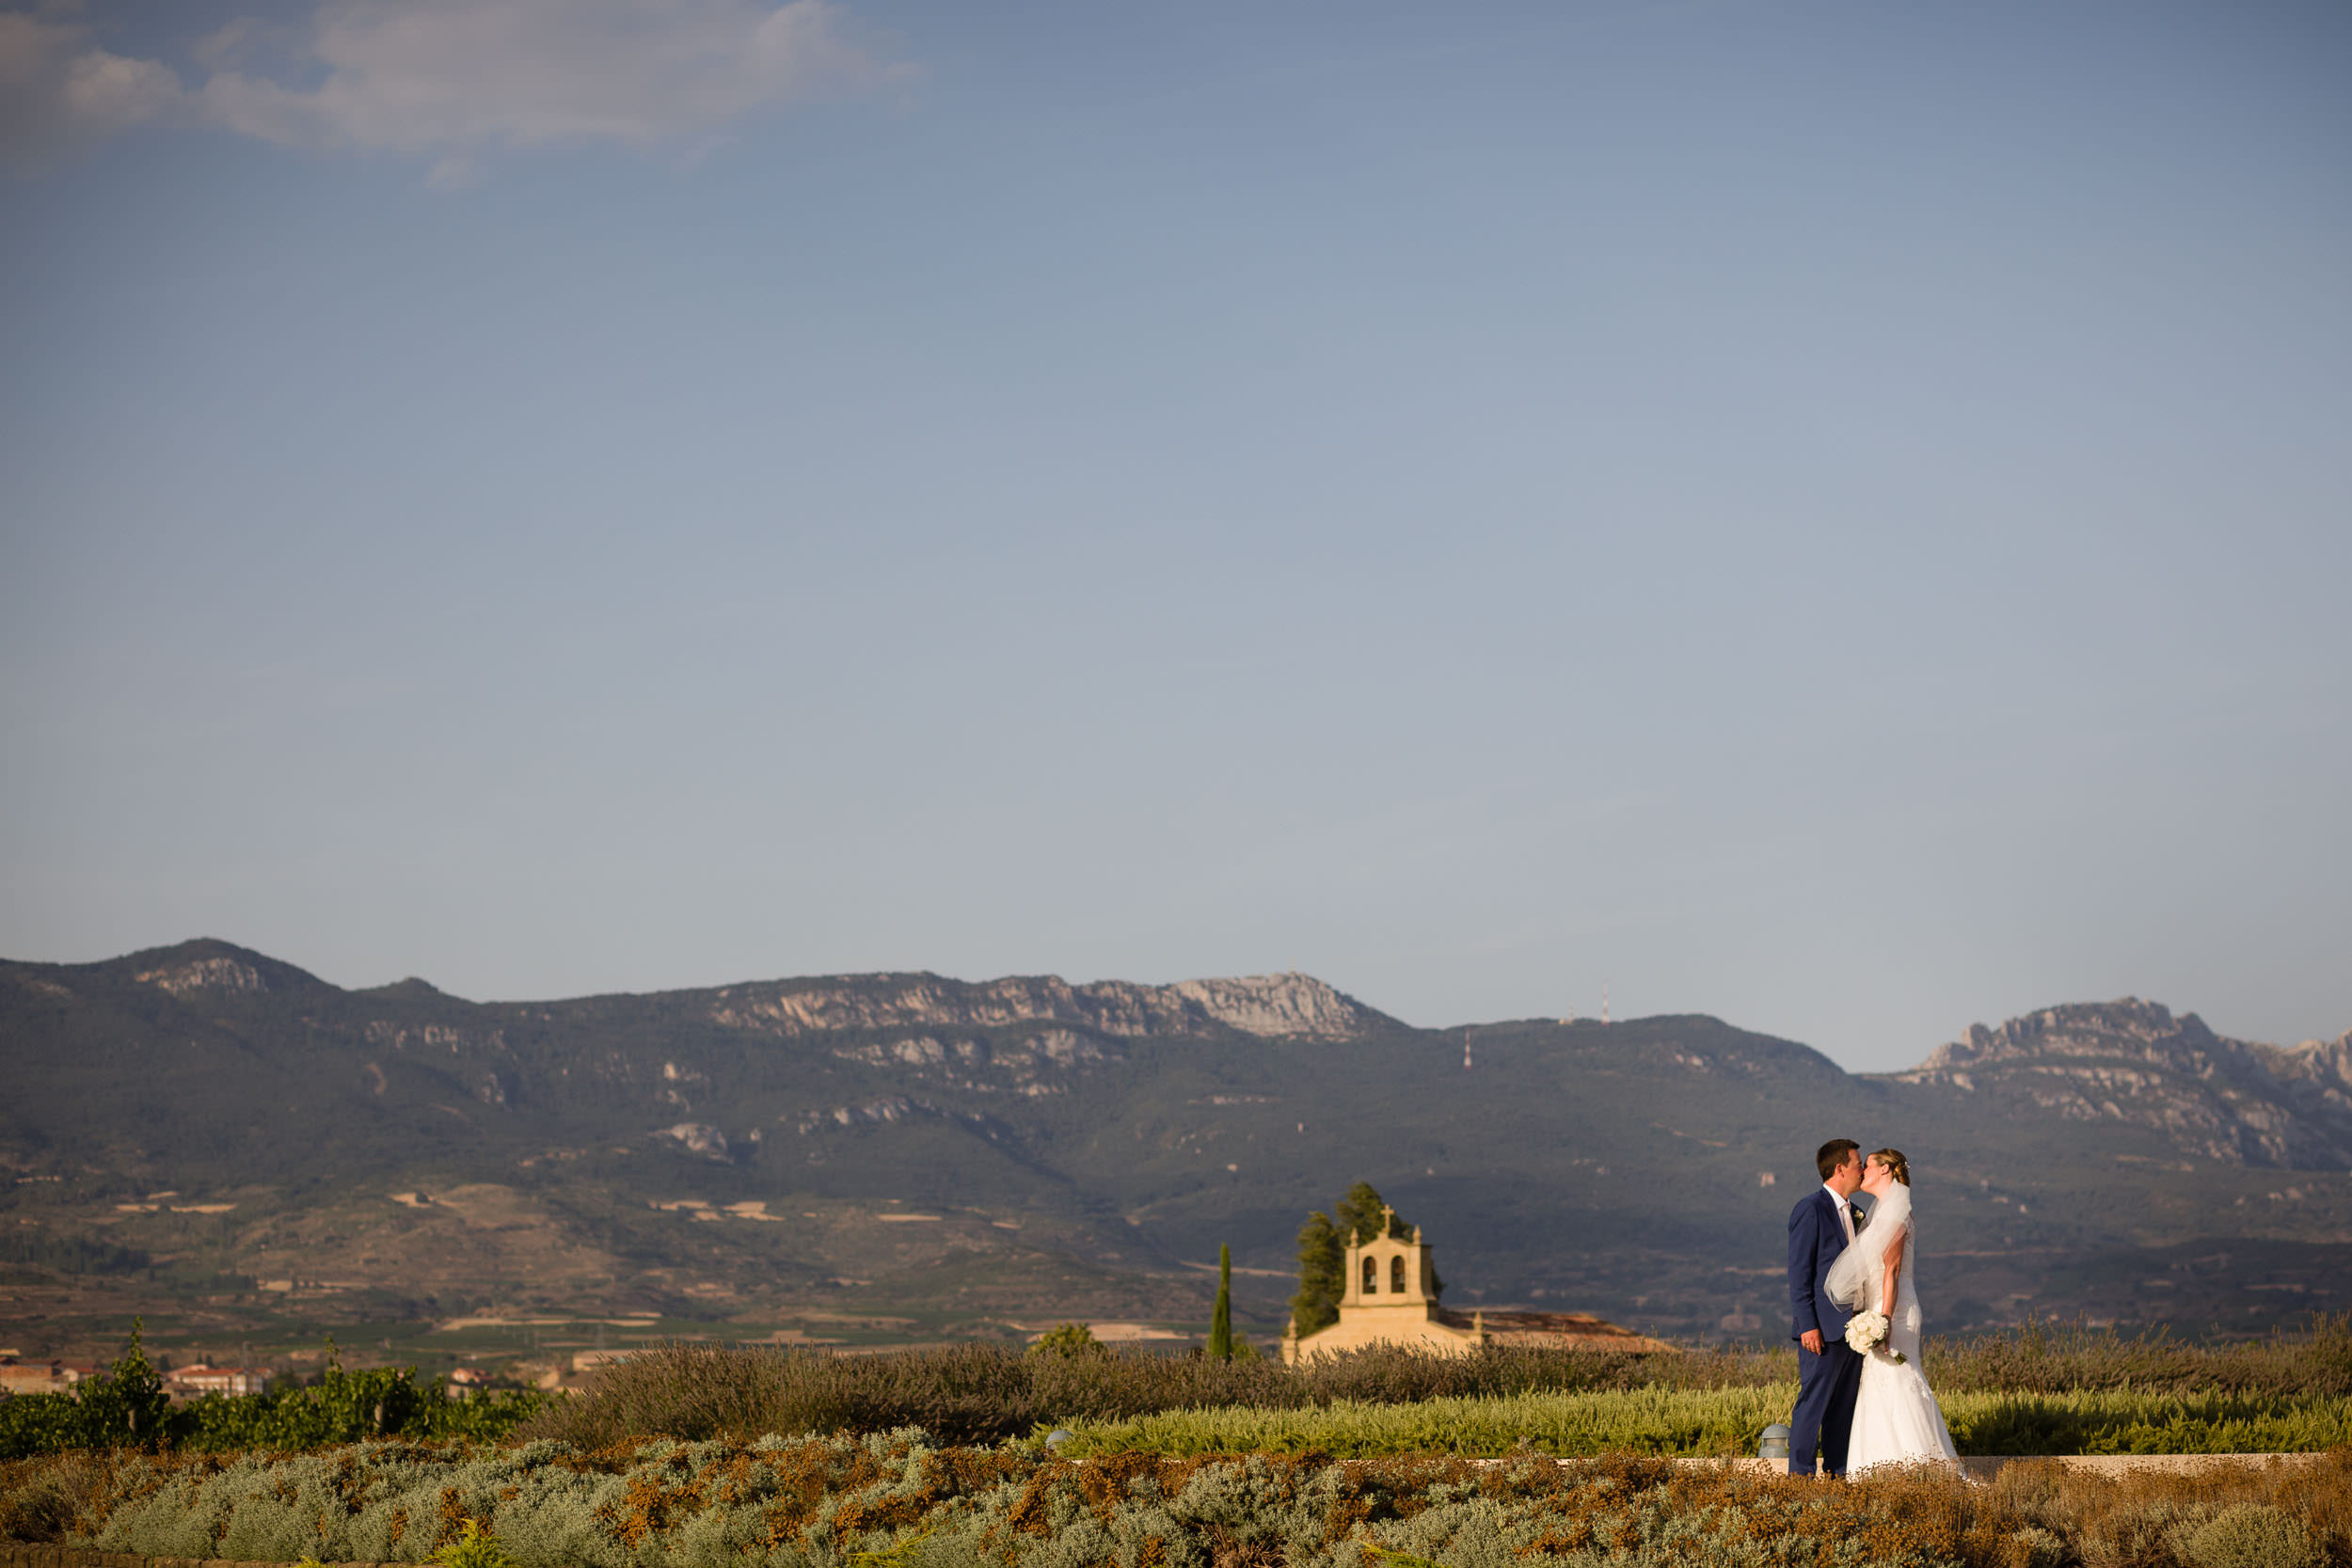 27/8/16 Amy & Carl's wedding at Bodegas Vivanco, Briones, La Rioja, Spain. Photo by James Sturcke | www.sturcke.org